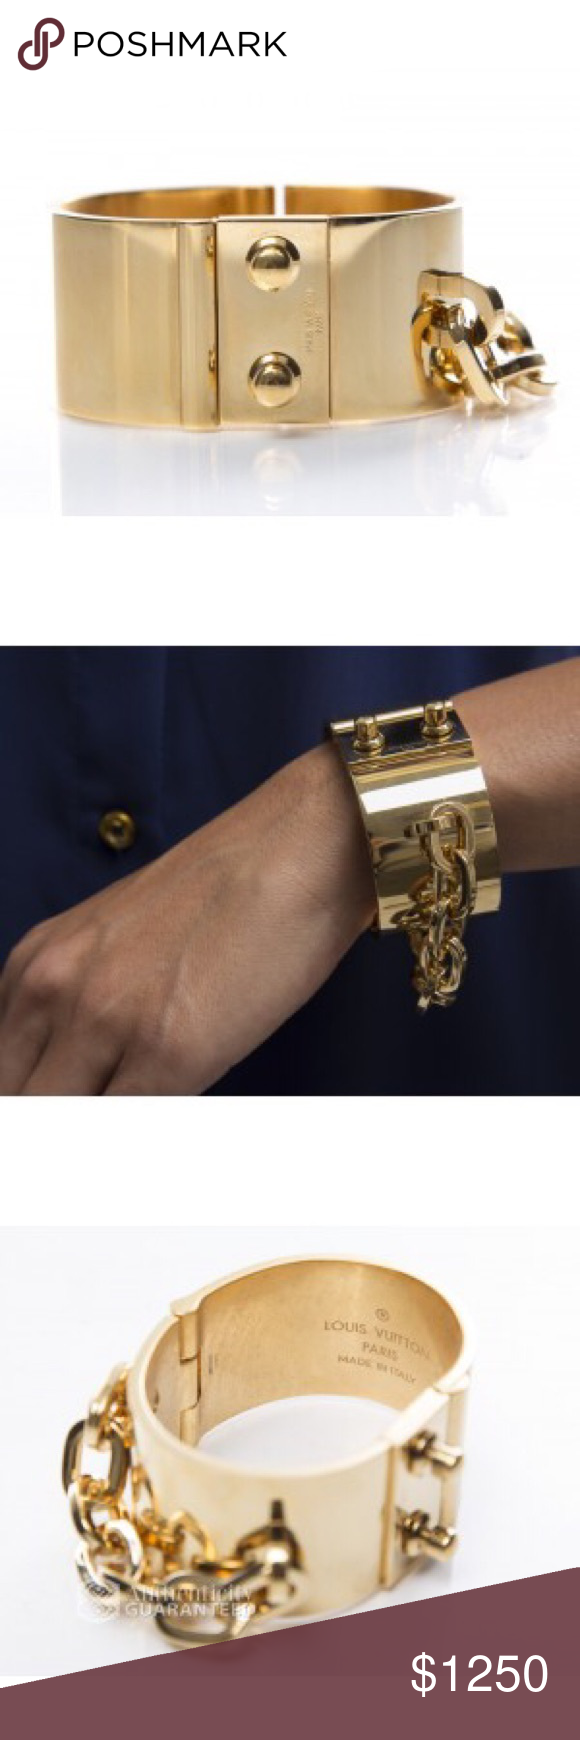 Louis vuitton gold lock me manchette bracelet pinterest